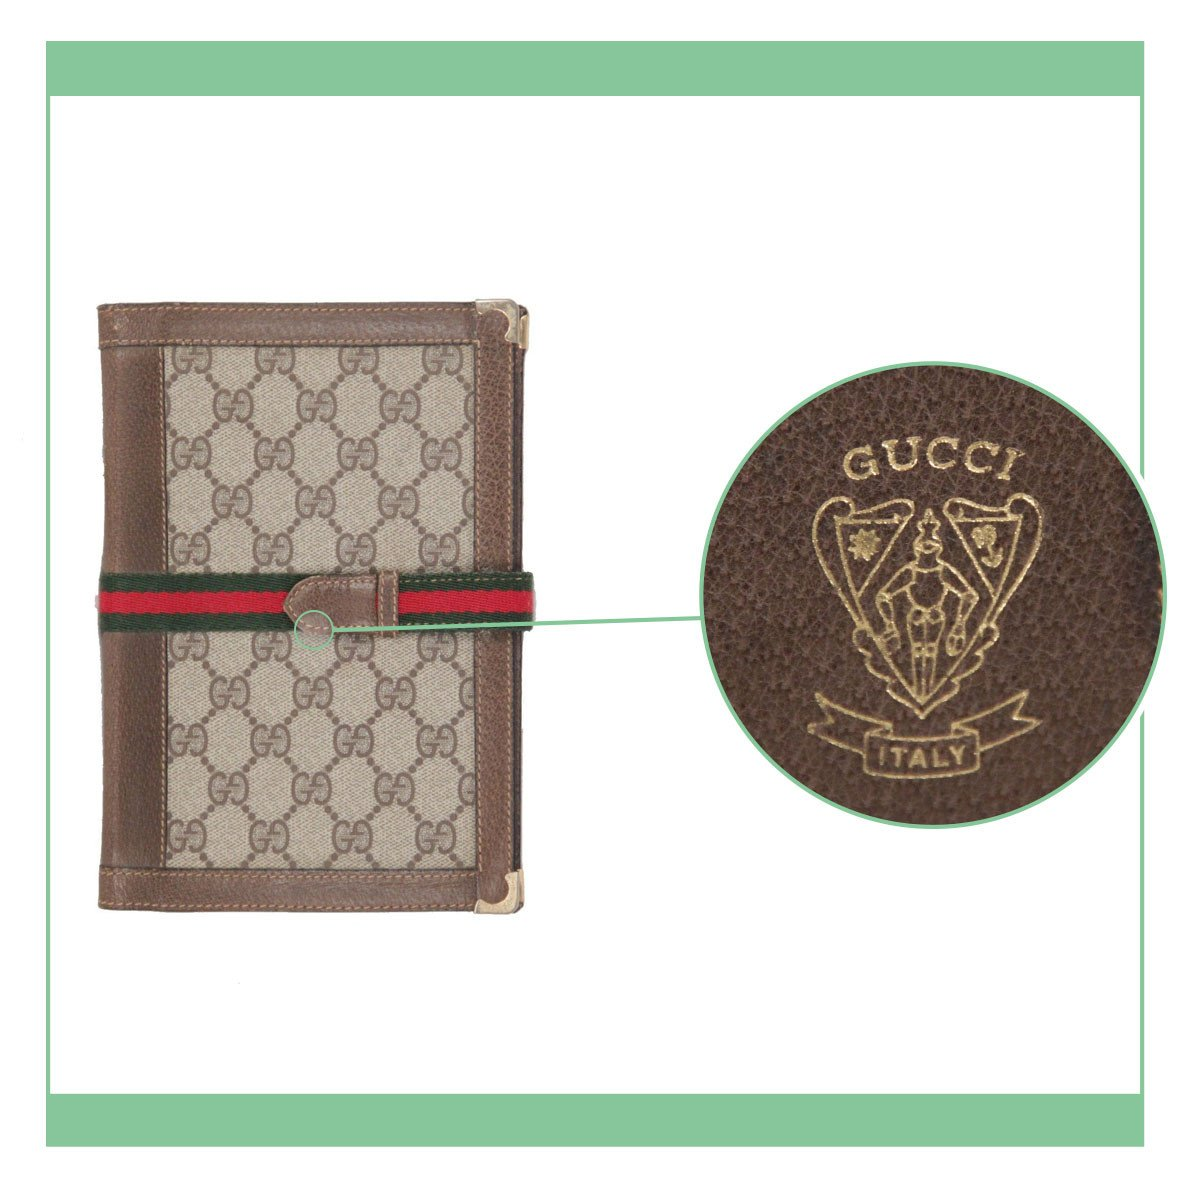 9f52f7b1d Gucci  a close look at they patented logos and serials - VintageMania